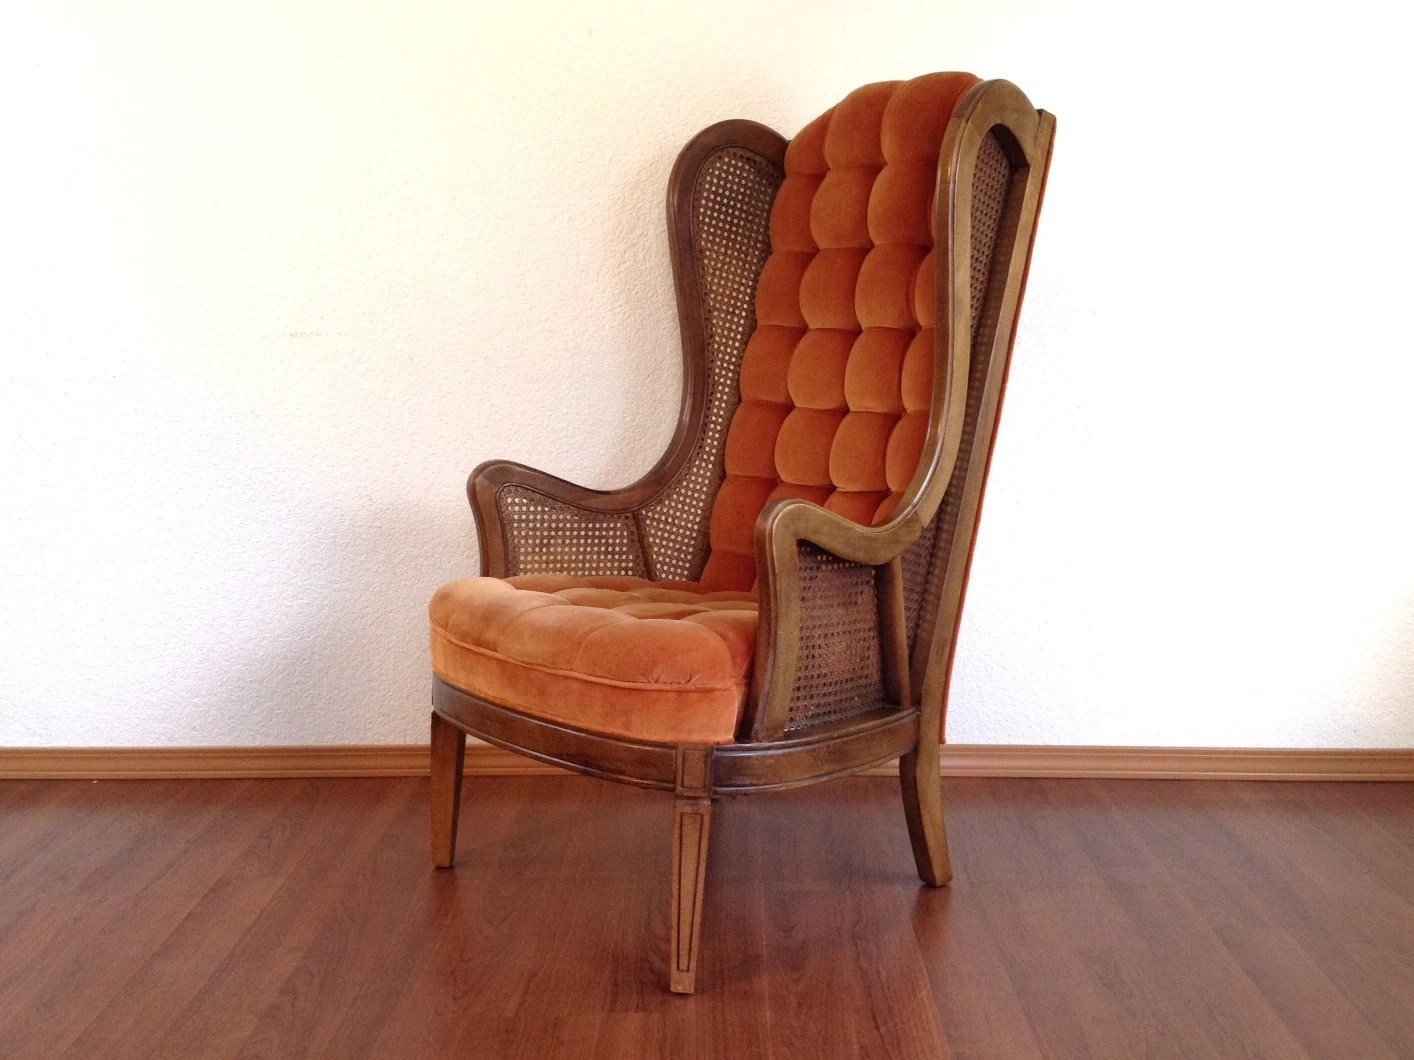 Retro Wing Chair Vintage Cane Wingback Chair With Tufted Back And Seat By